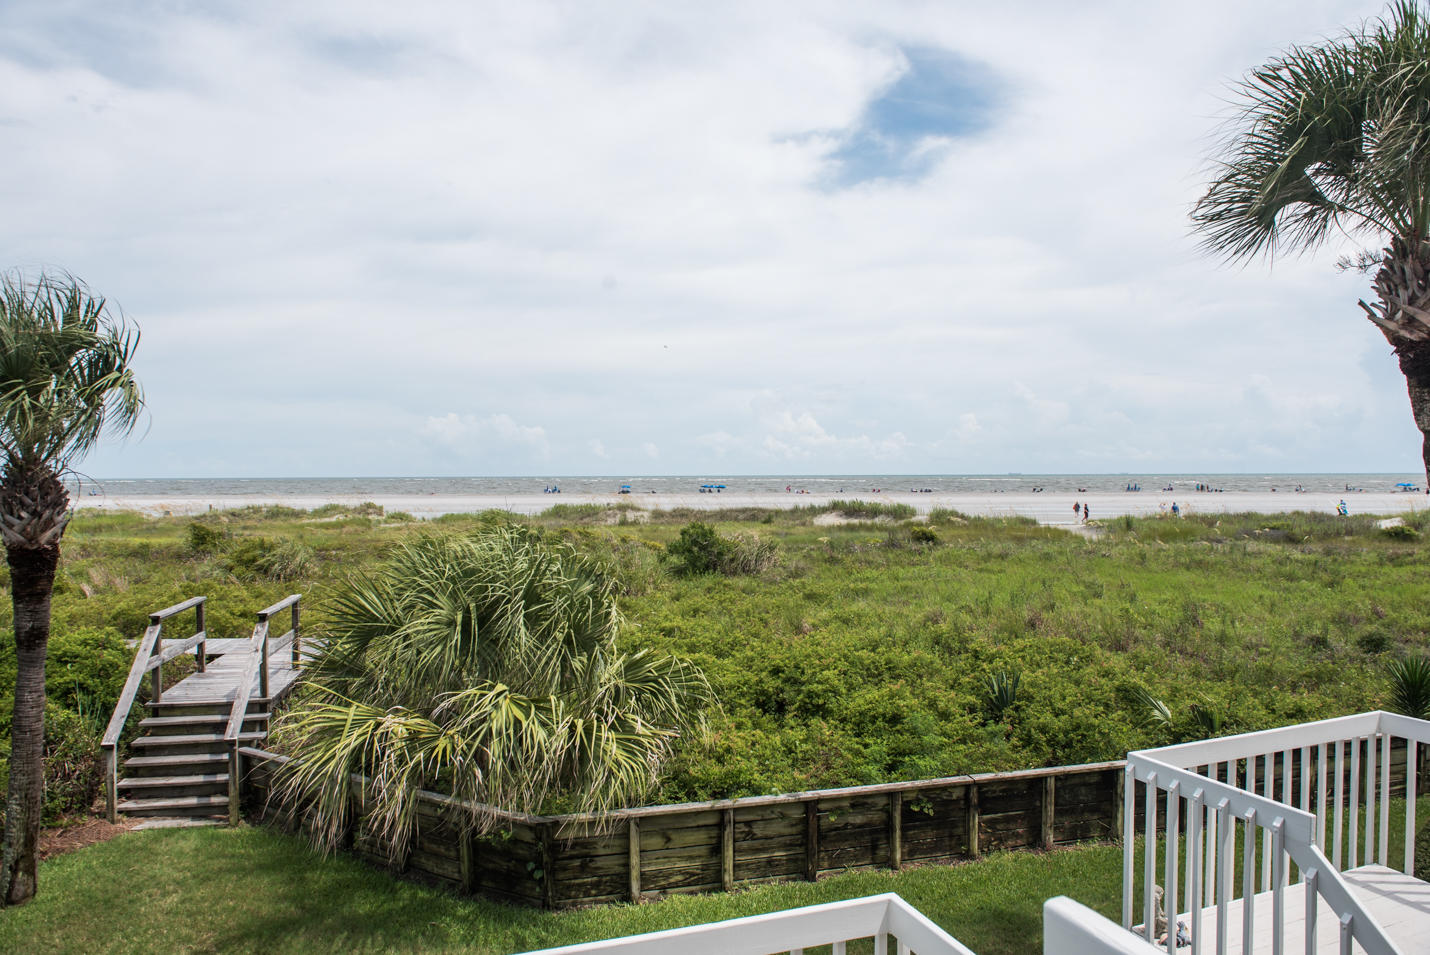 Beach Club Villas Homes For Sale - 66 Beach Club Villas, Isle of Palms, SC - 27